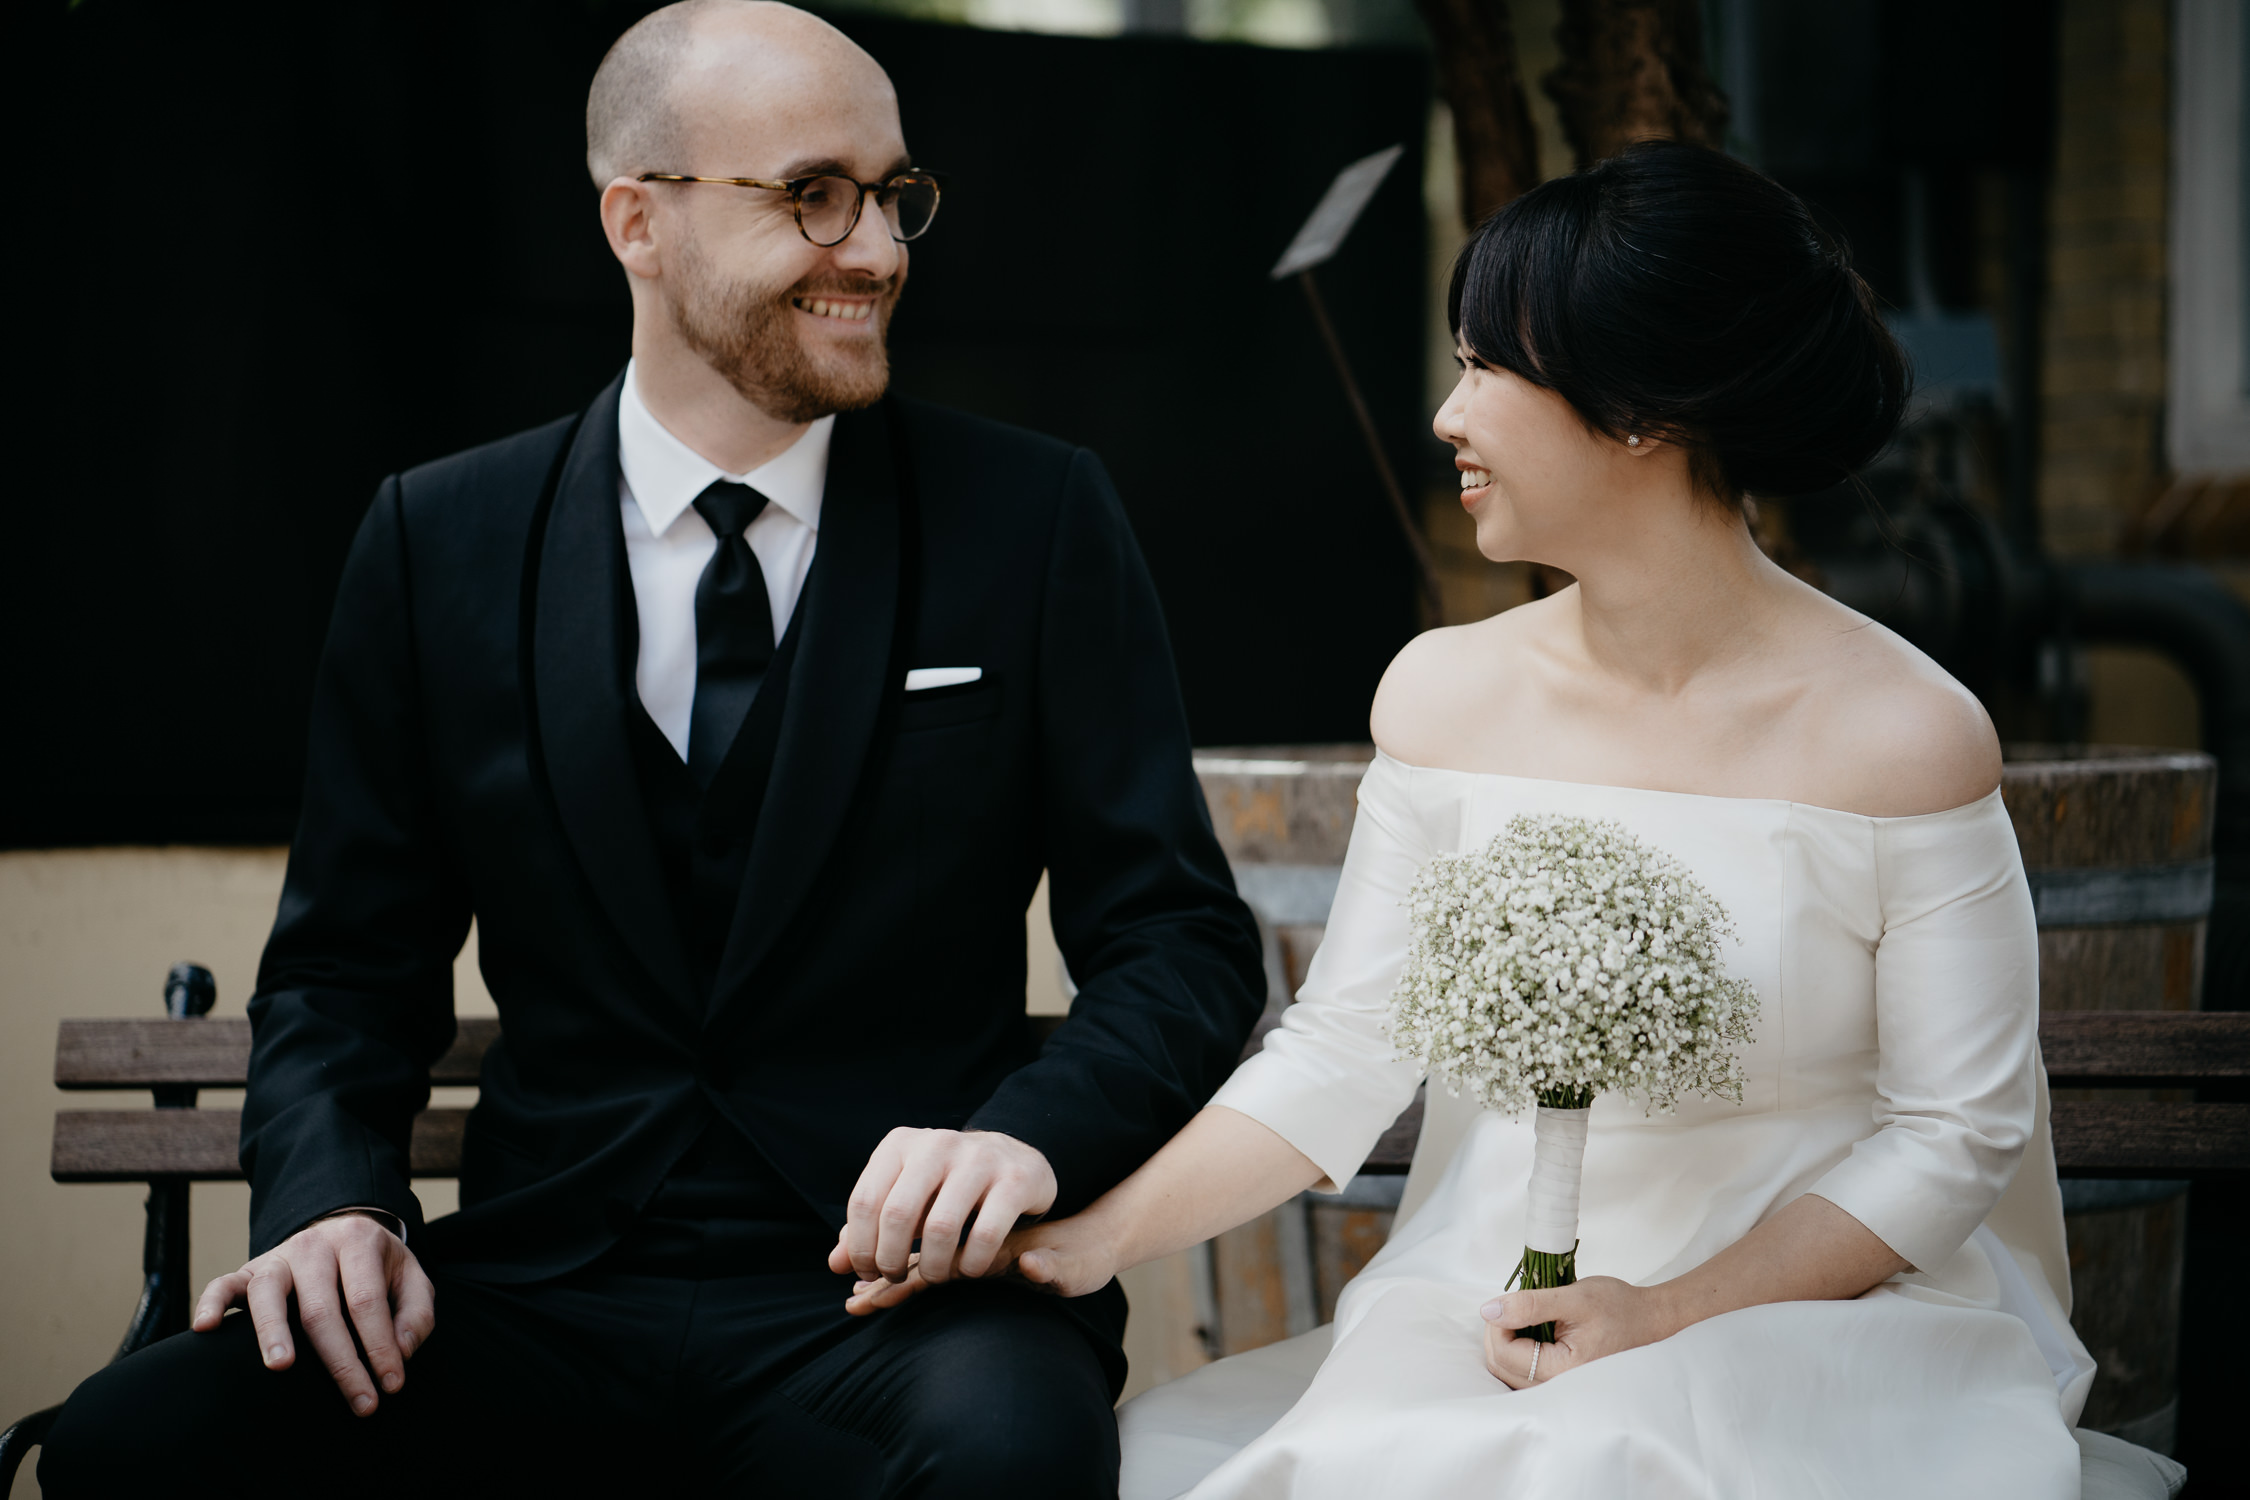 couple  getting married at hortus botanicus amsterdam photography by mark hadden